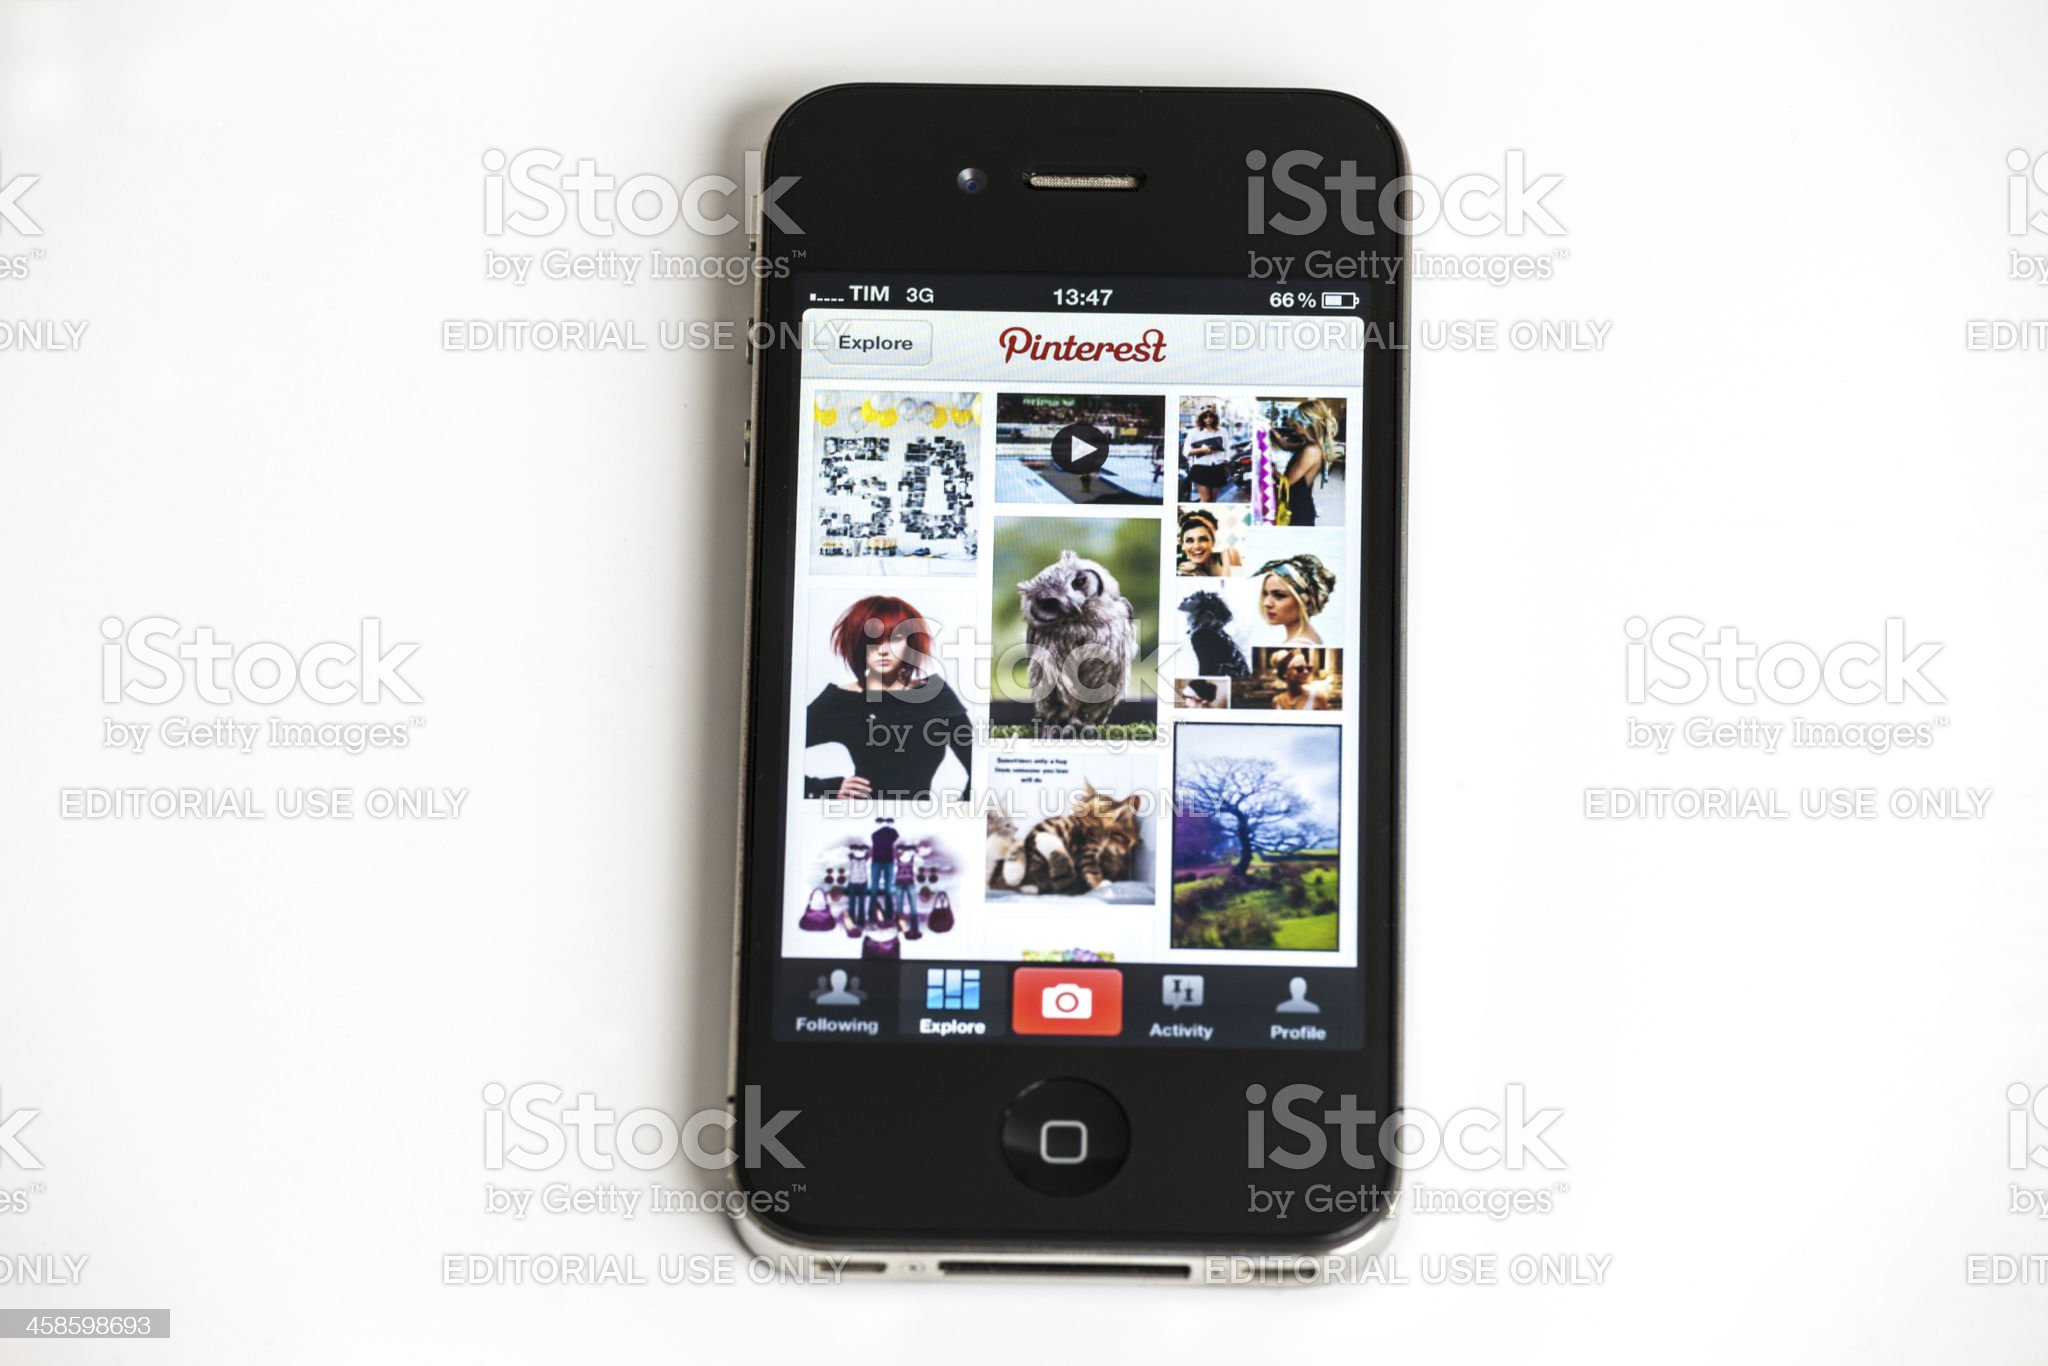 Pinterest Application on Iphone 4 royalty-free stock photo